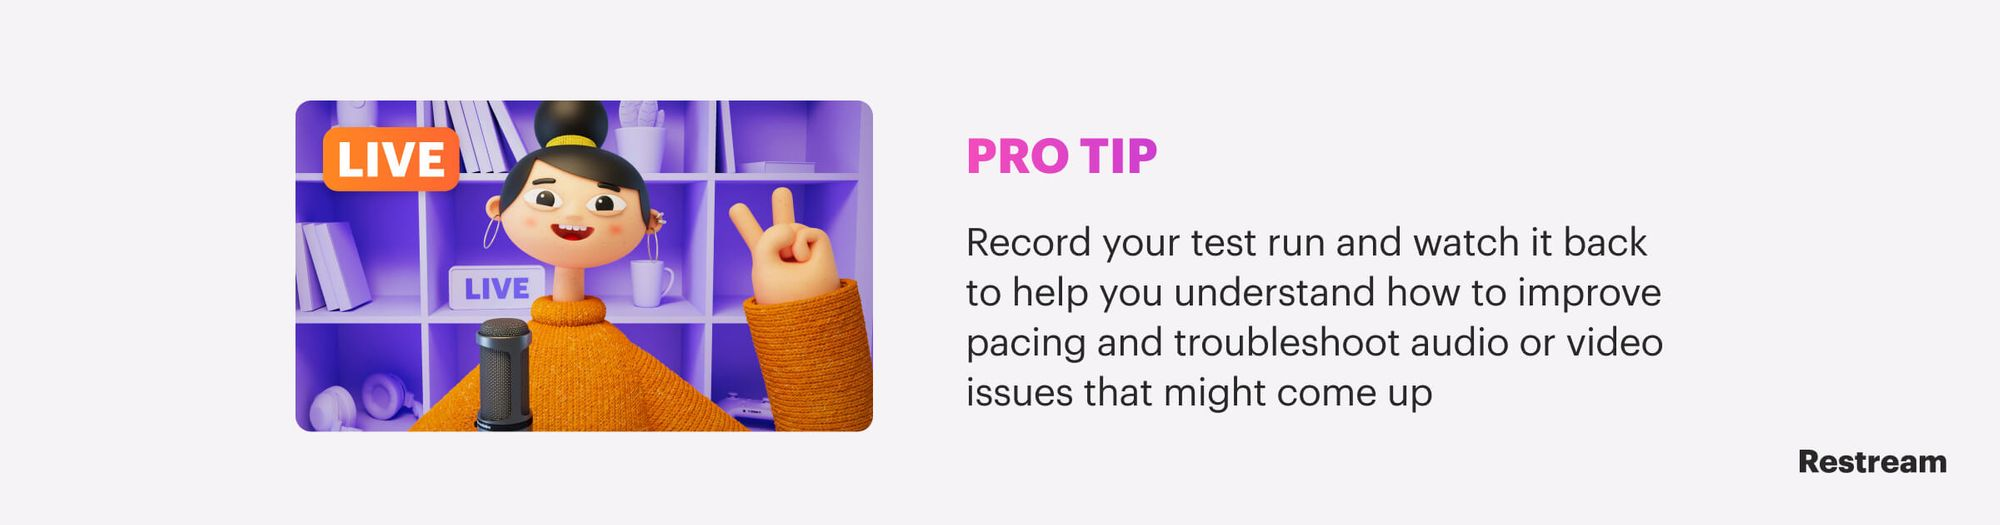 Record your test run and watch it back to help you understand how to improve pacing